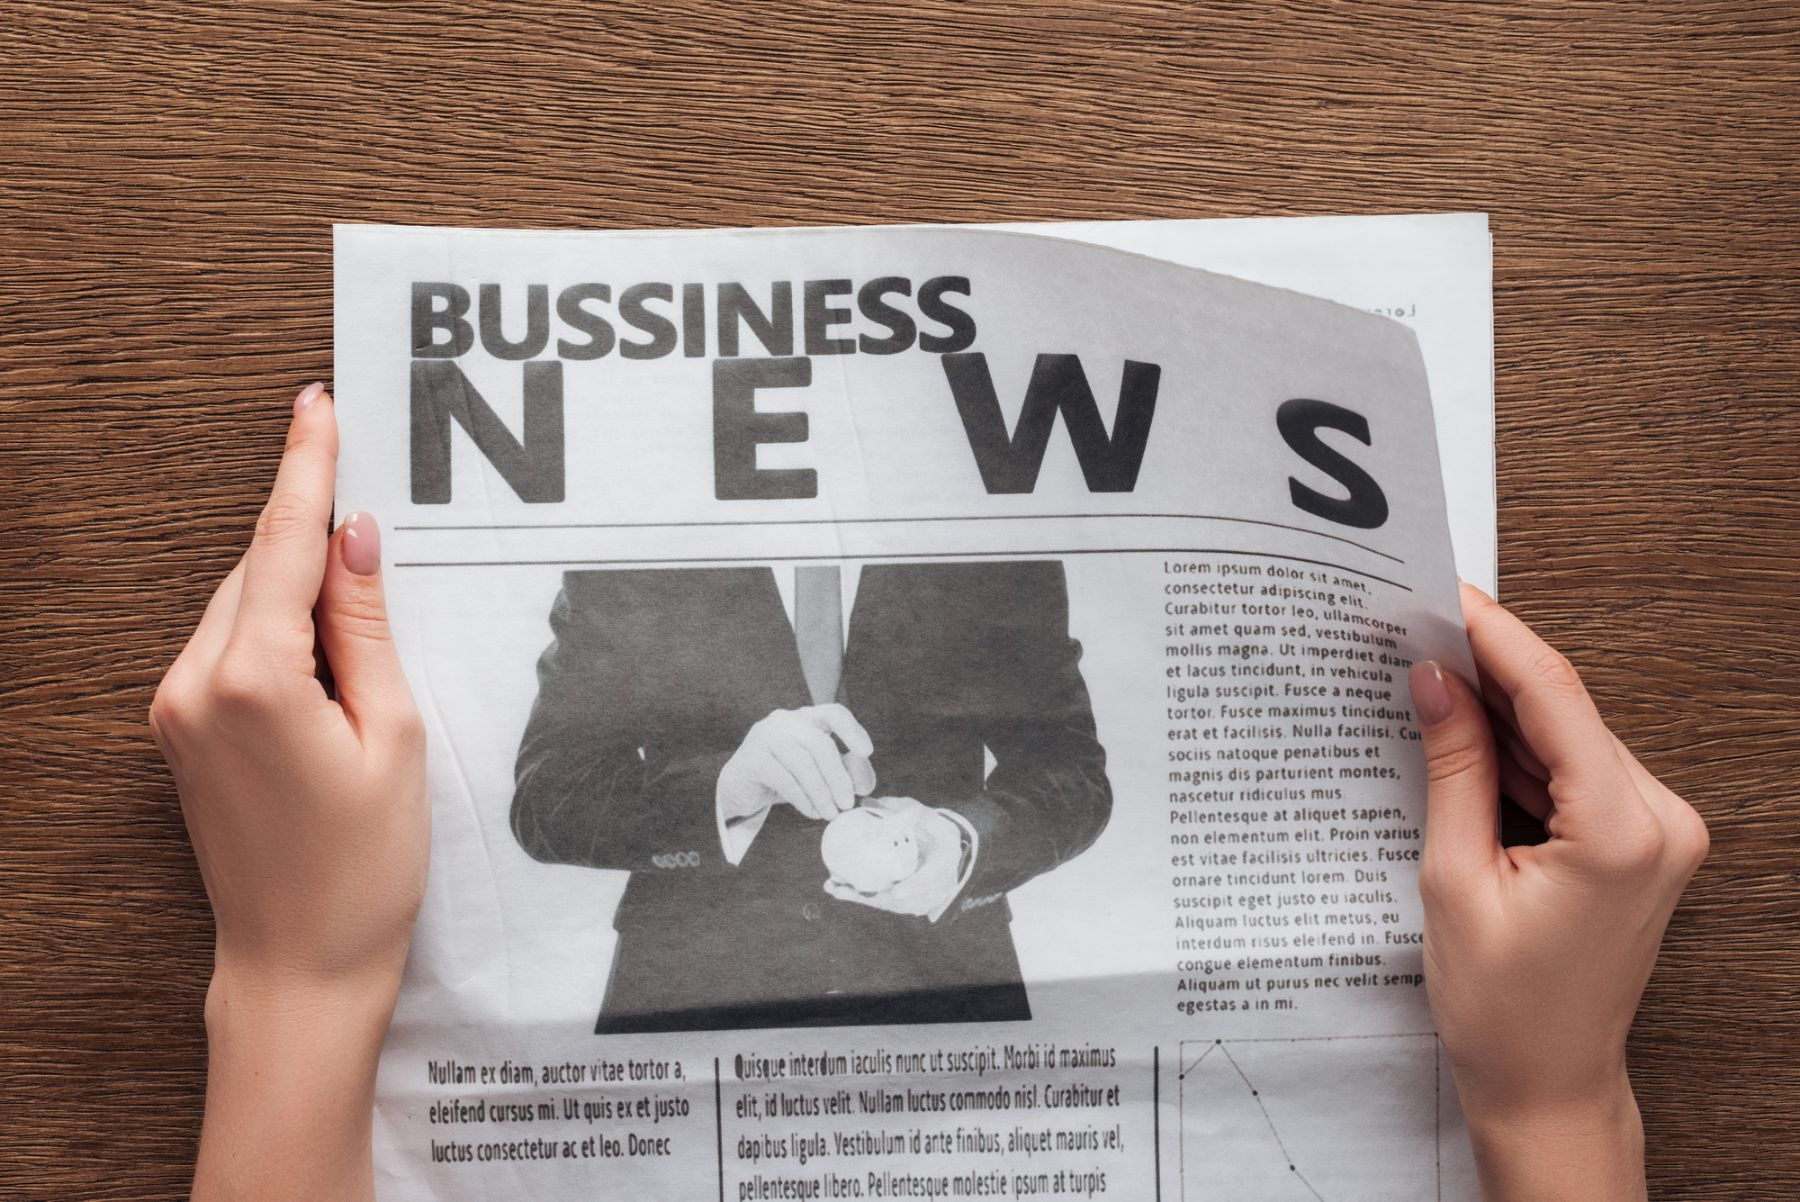 Hands holding business news section of newspaper